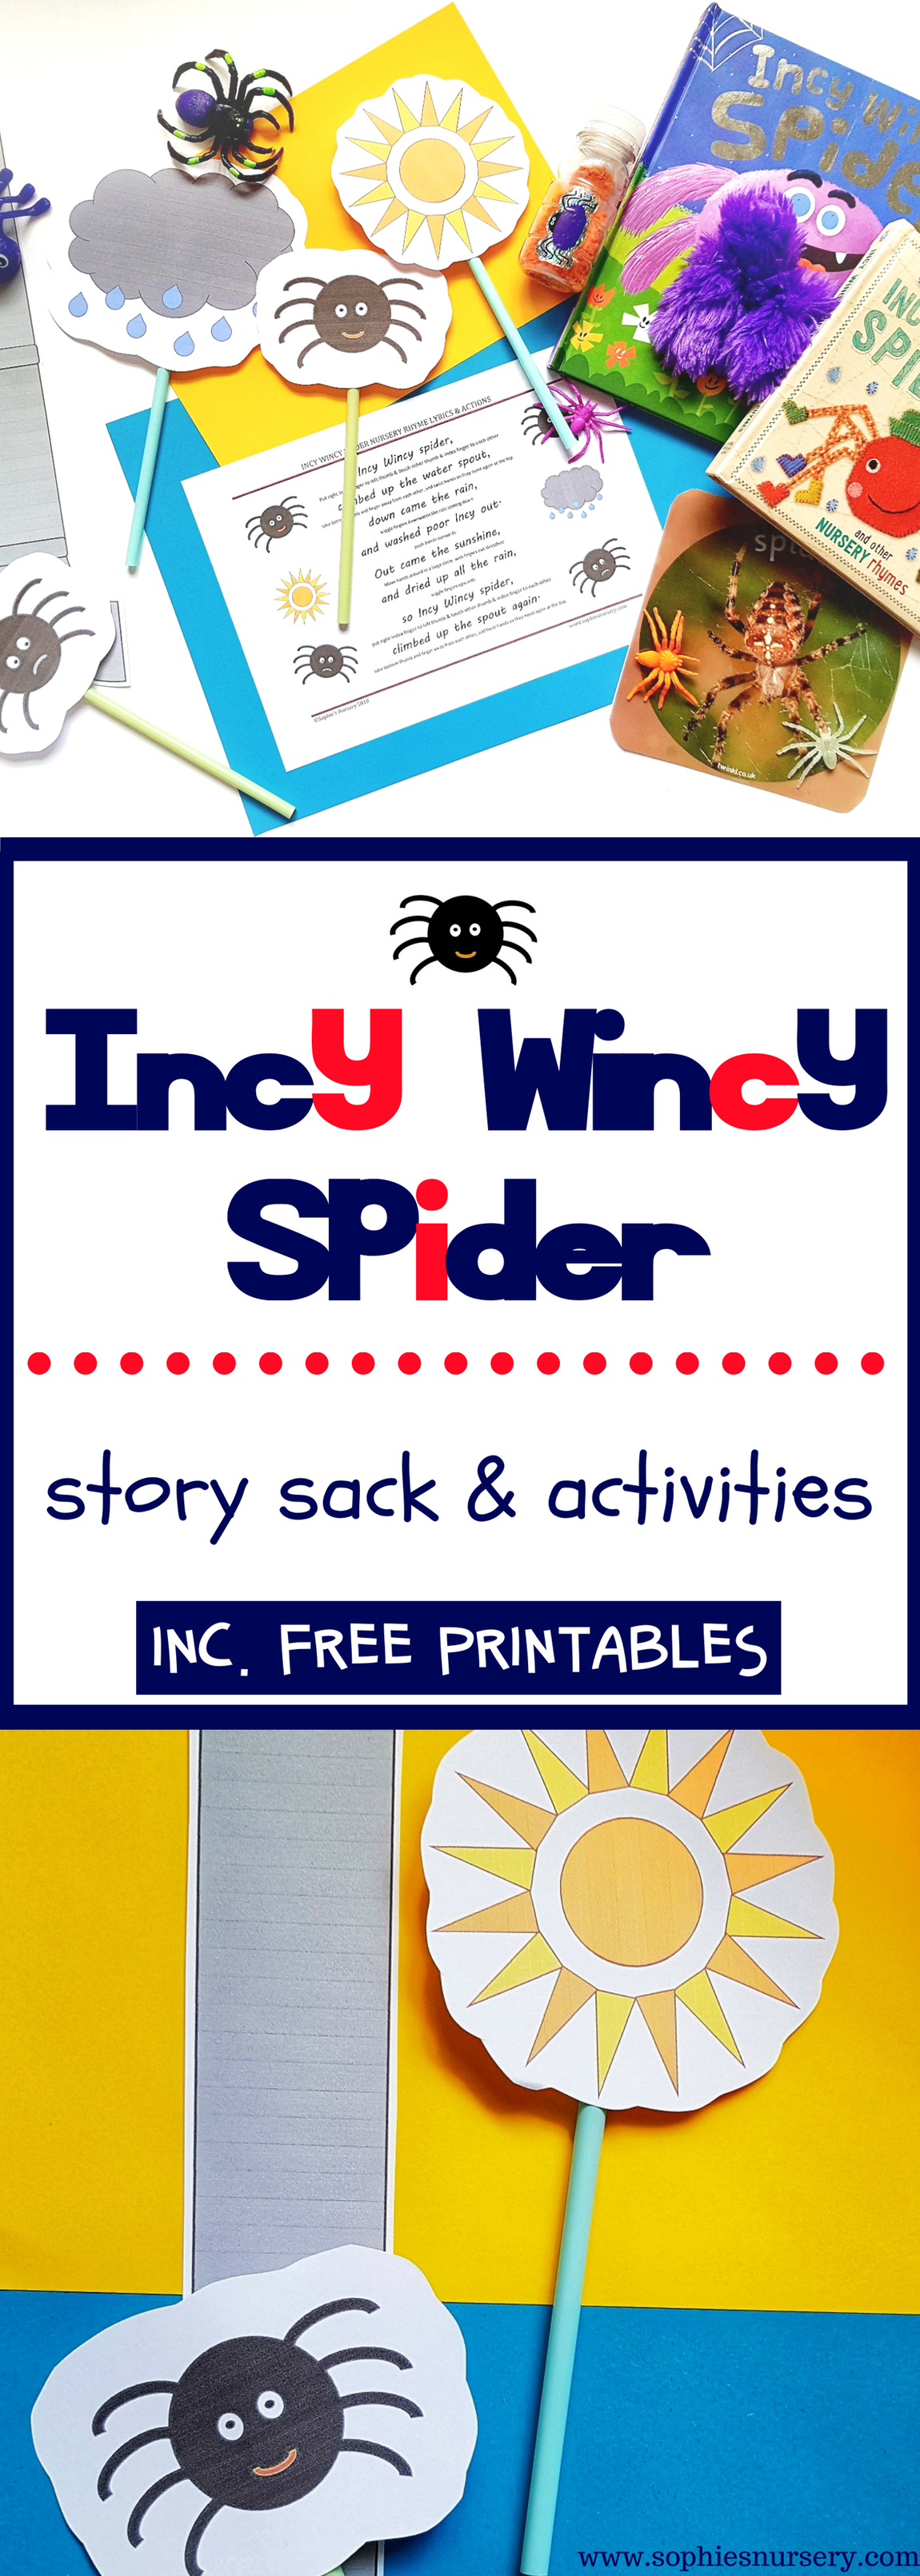 Incy Wincy Spider Song Amp Story Sack Activities